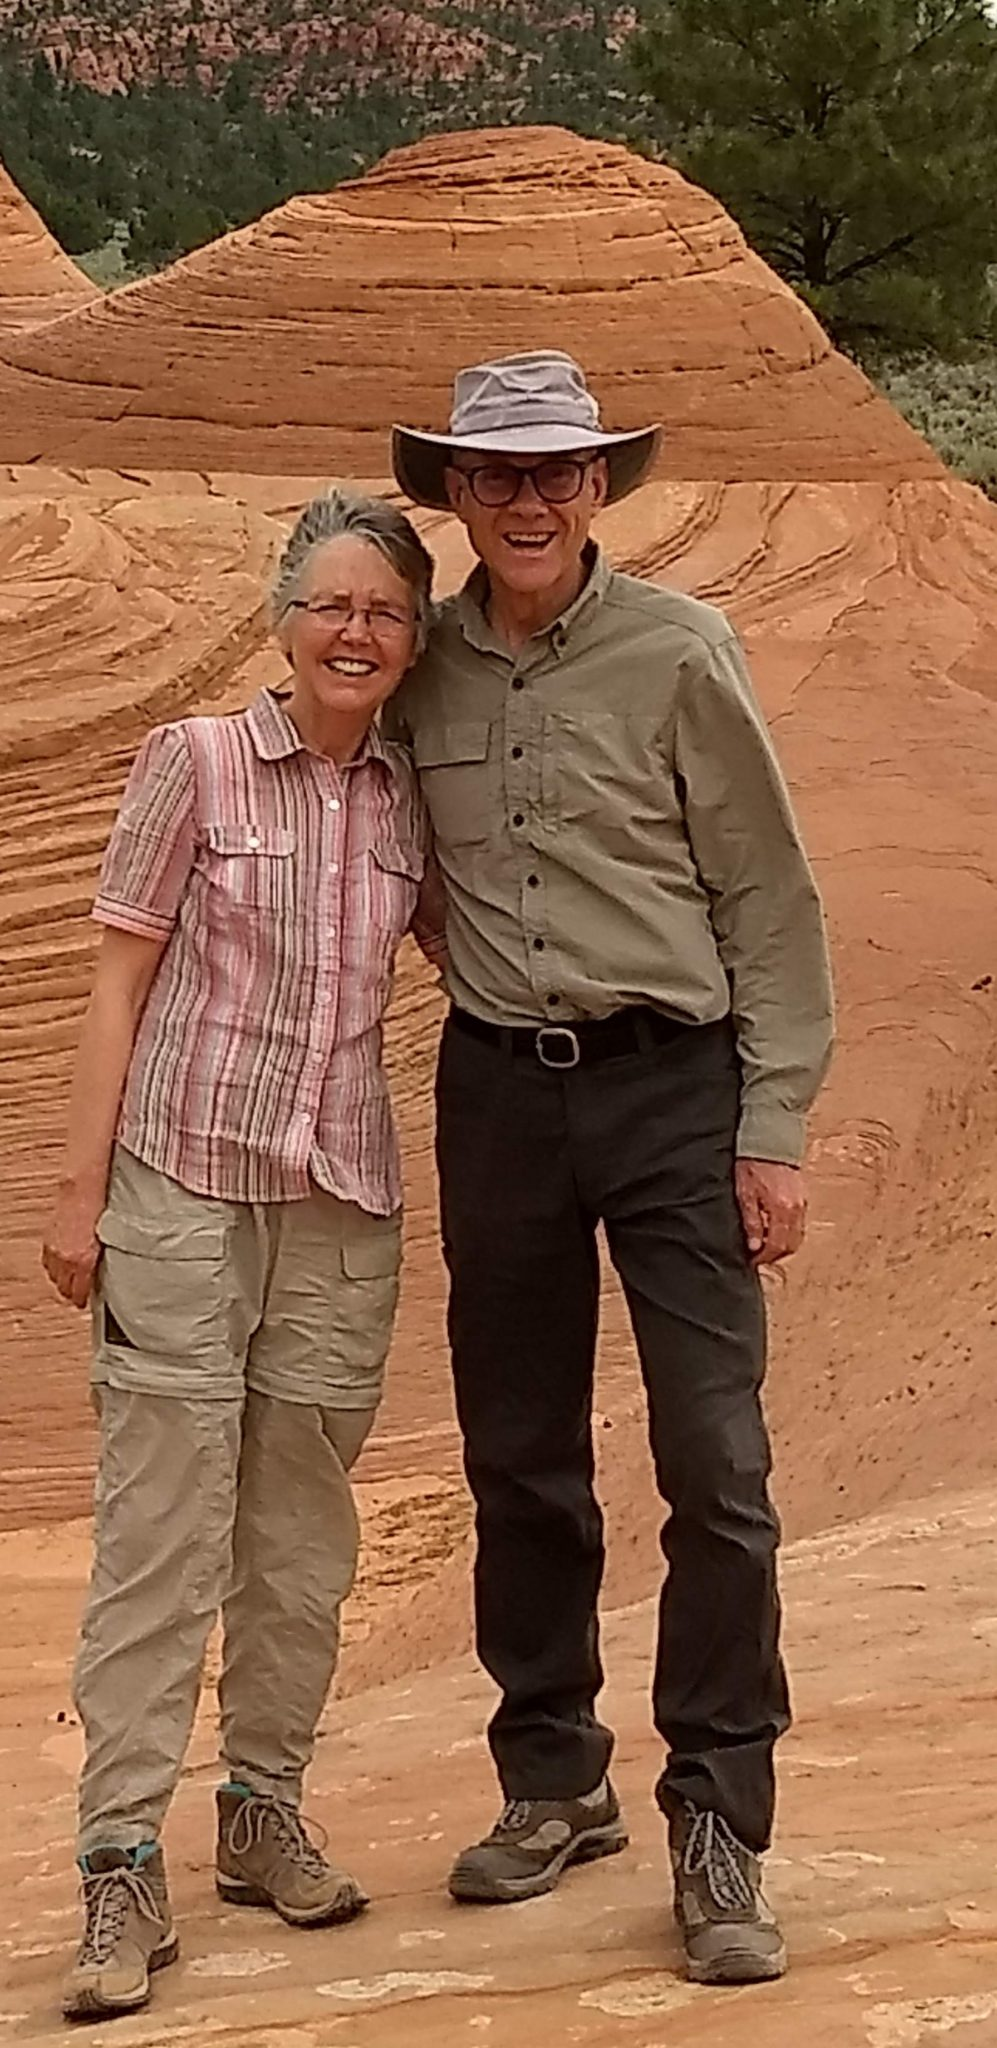 picture of Roger K. Allen and wife on a hike